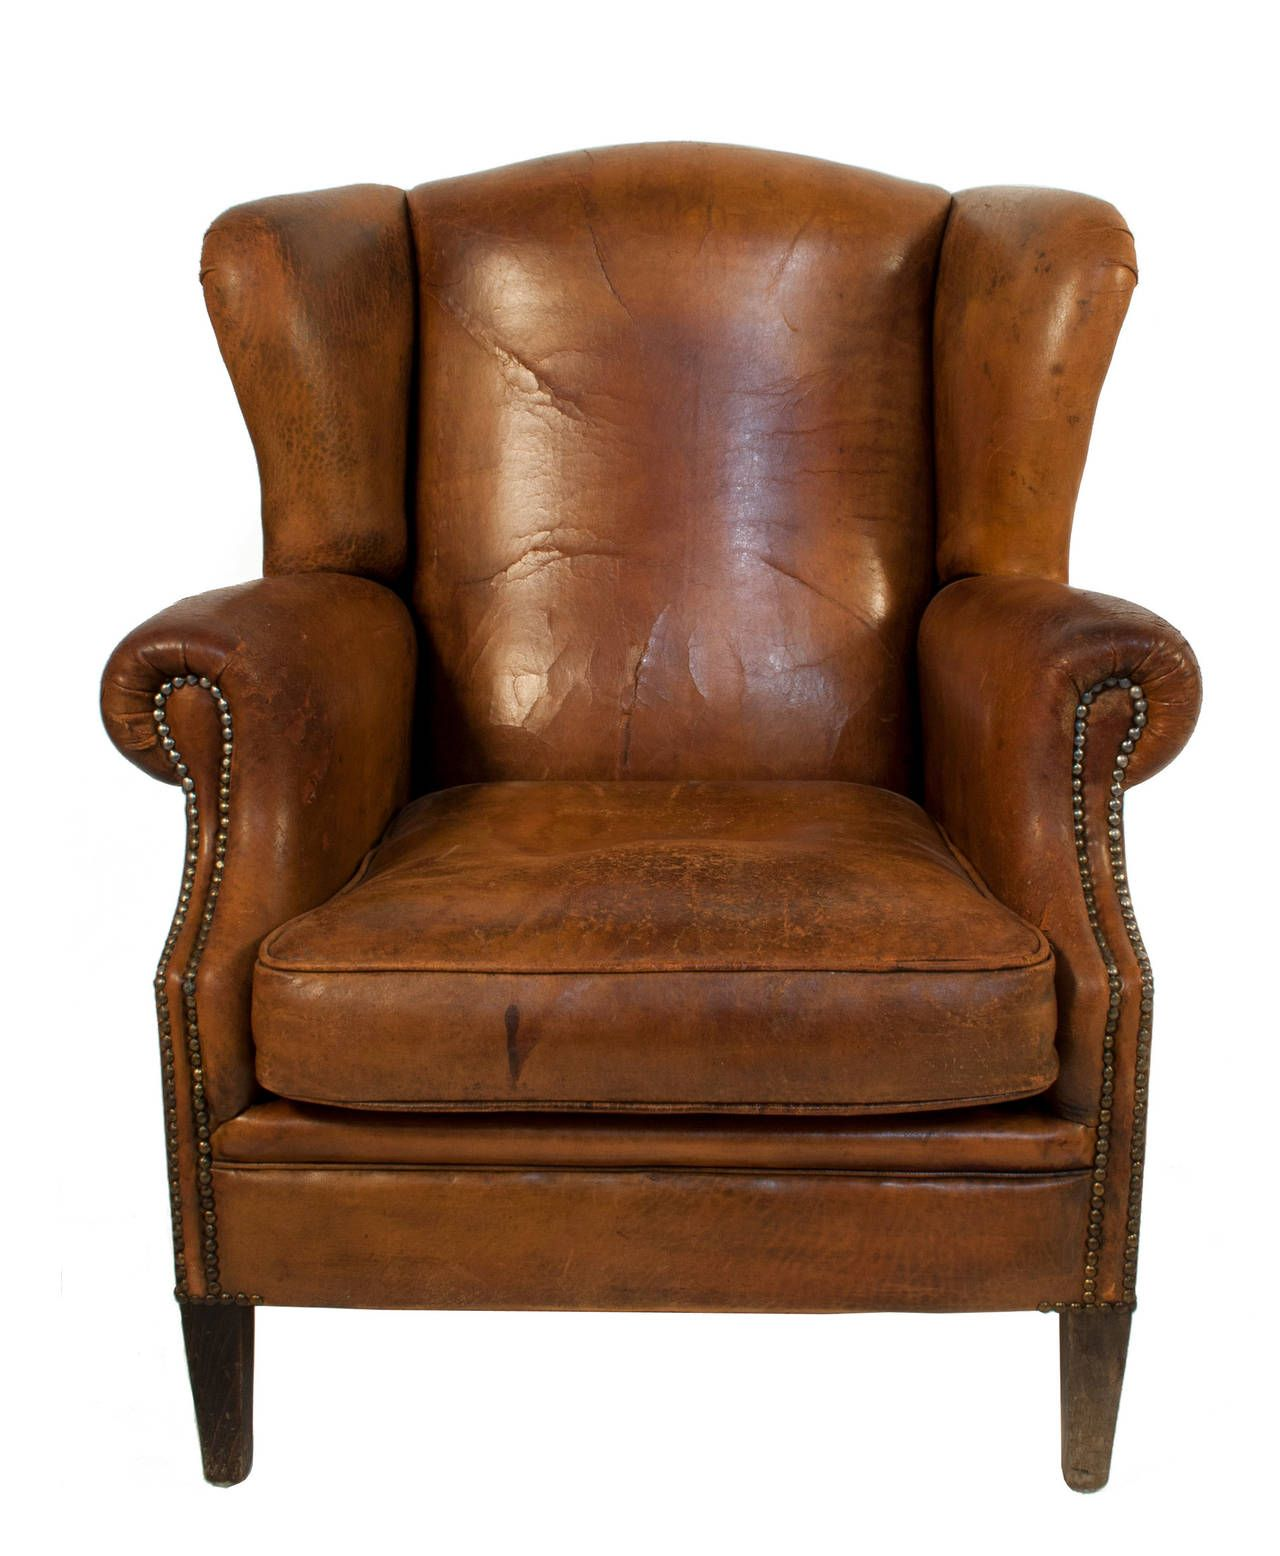 Burlington High Chair Leather Wingback Chair 1920s Curated Home Pinterest